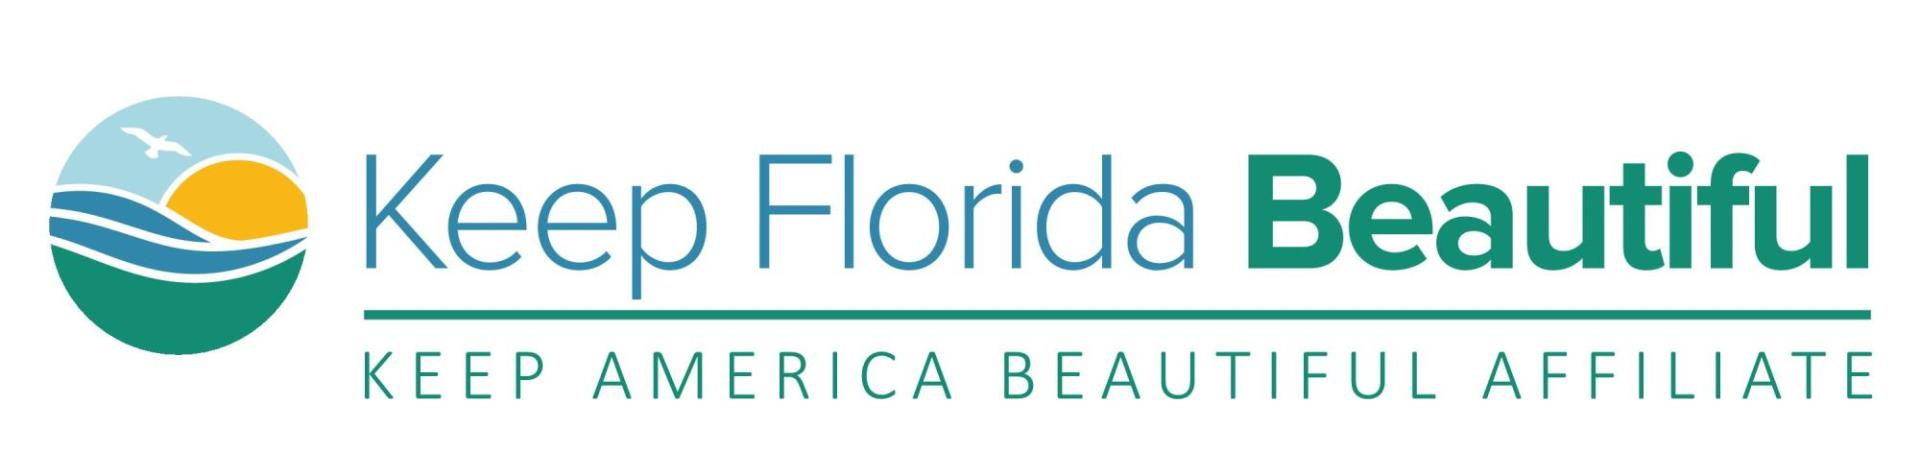 Keep Florida Beautiful www.keepfloridabeautiful.org